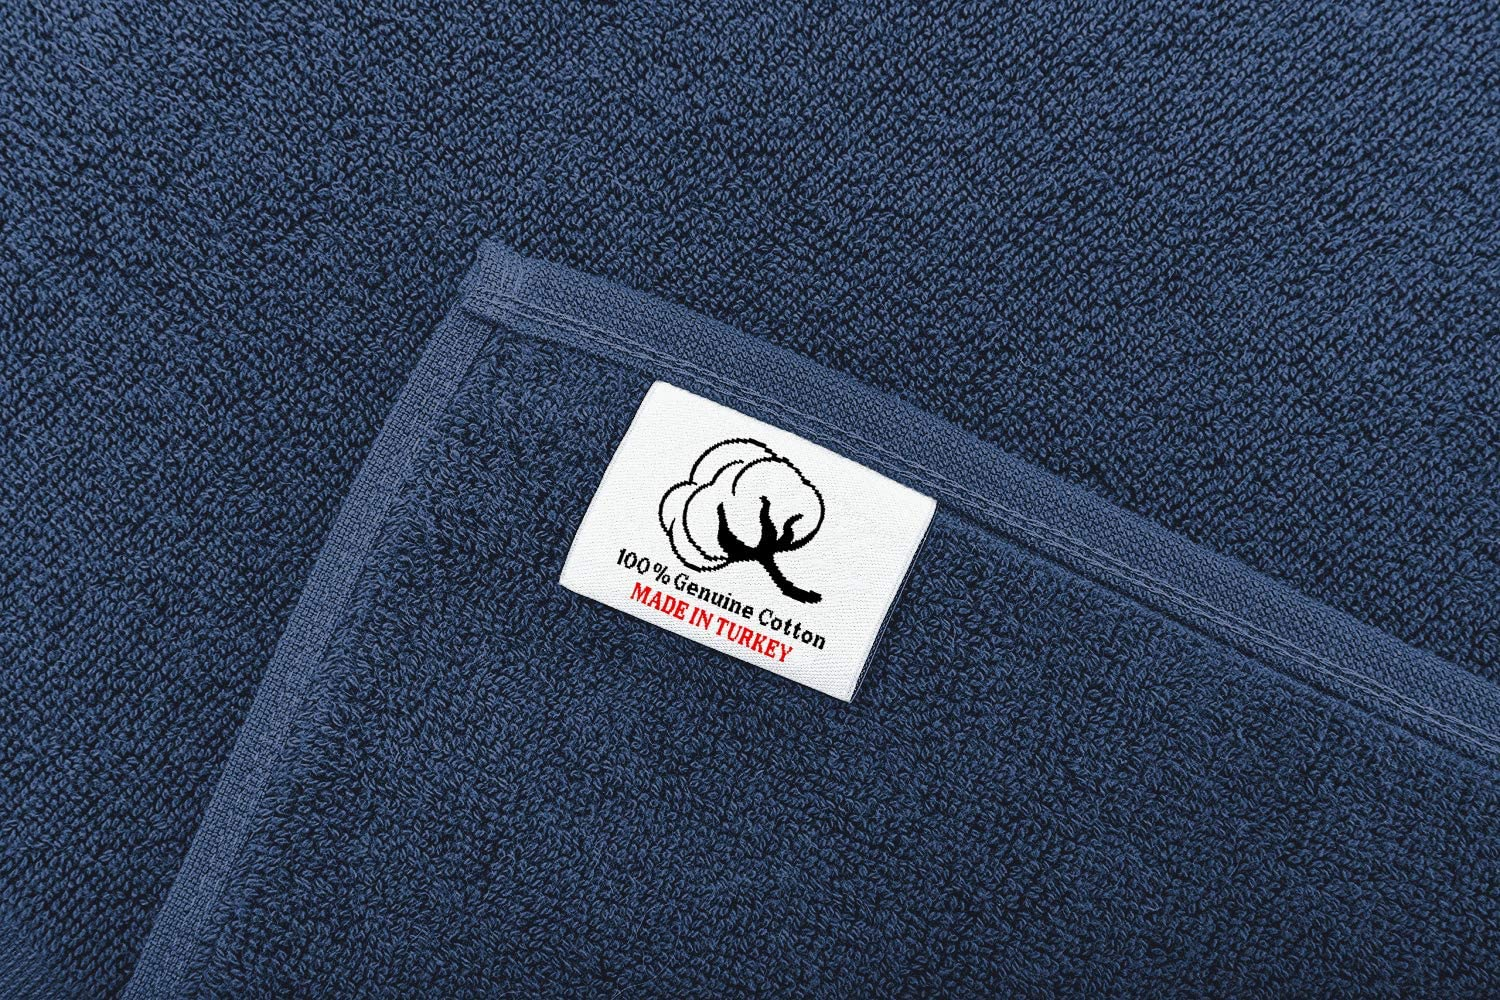 900 GSM Machine Washable 20x34 Inches 2-Pack Banded Bath Mats Navy Blue 100/% Ring Spun Genuine Cotton Maximum Softness and Absorbency by United Home Textile Luxury Hotel and Spa Quality